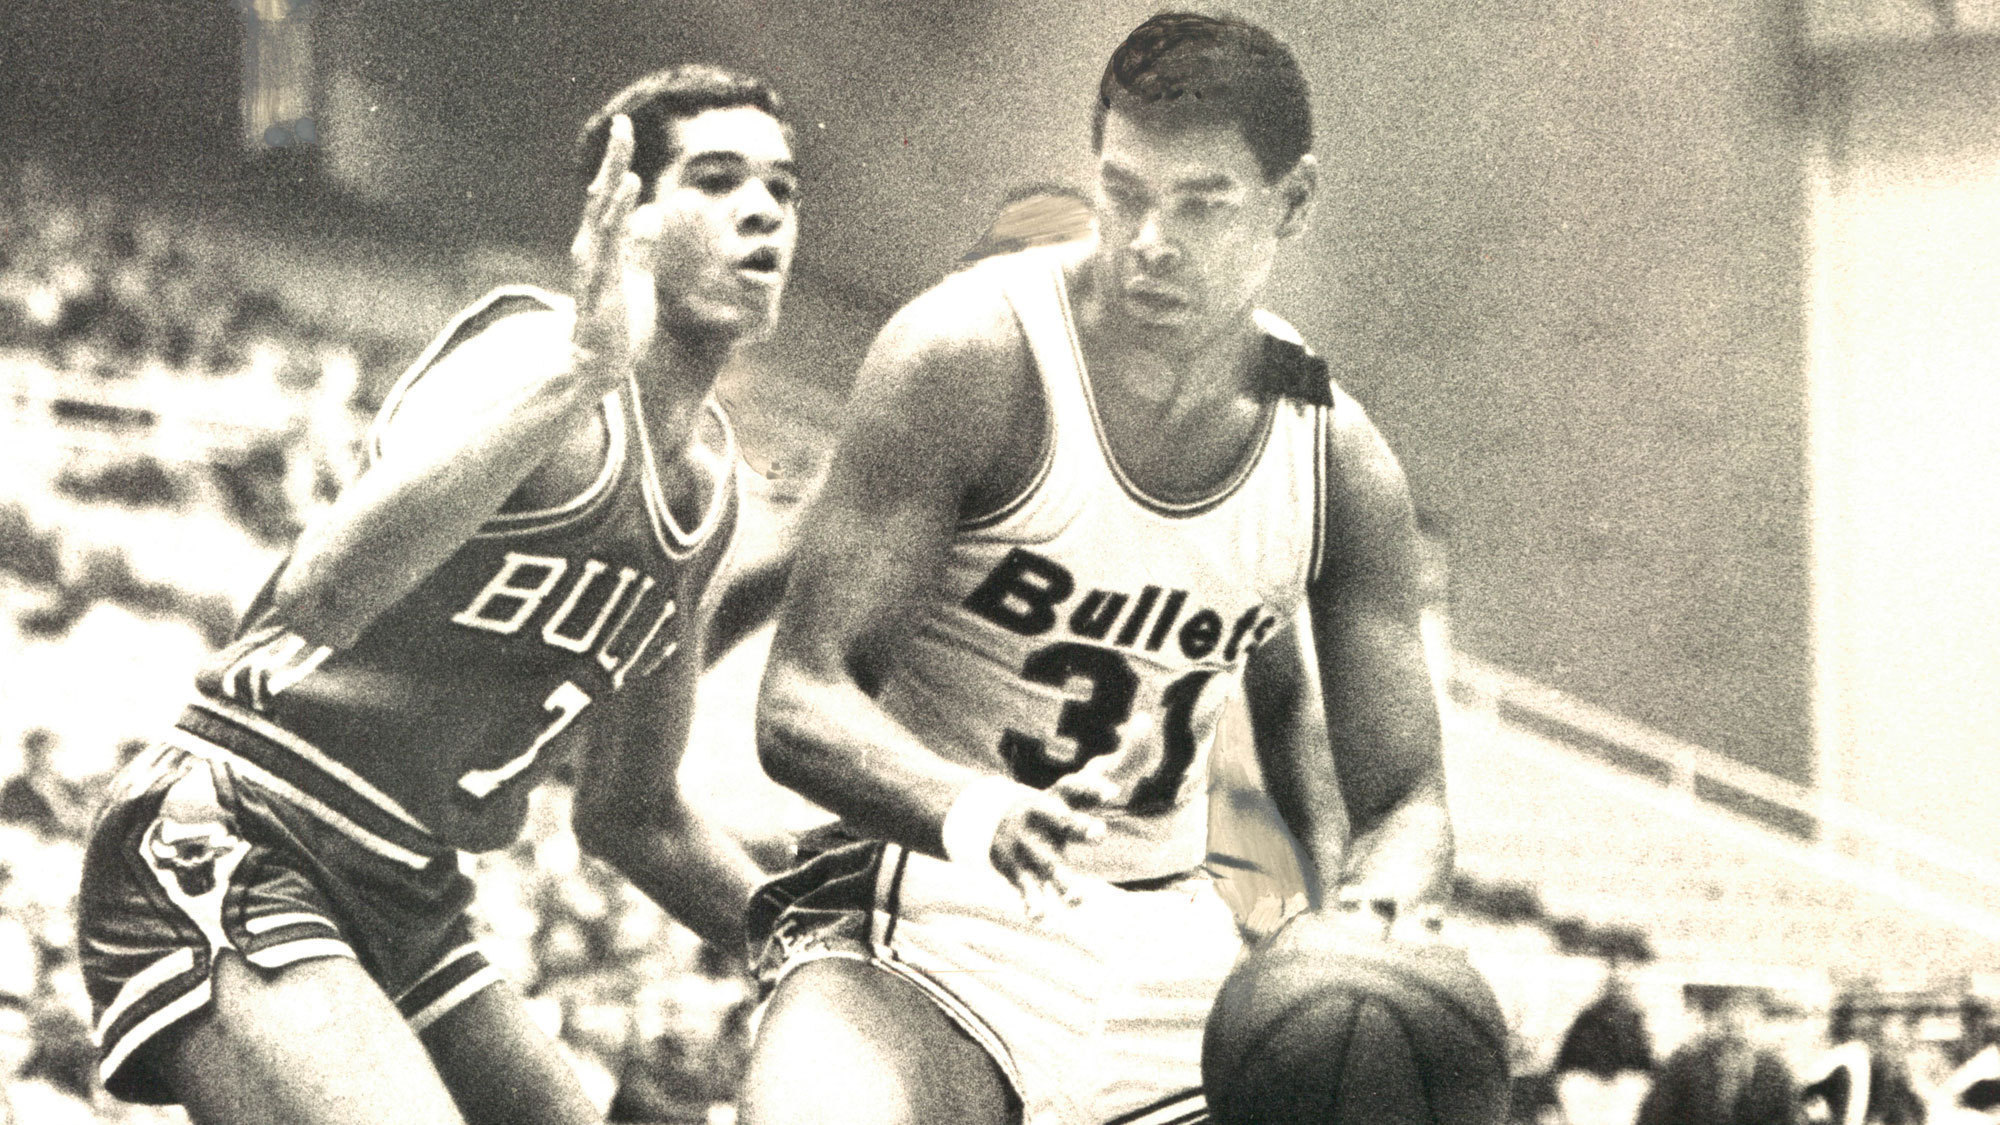 Catching Up With Former Baltimore Bullets forward Ray Scott